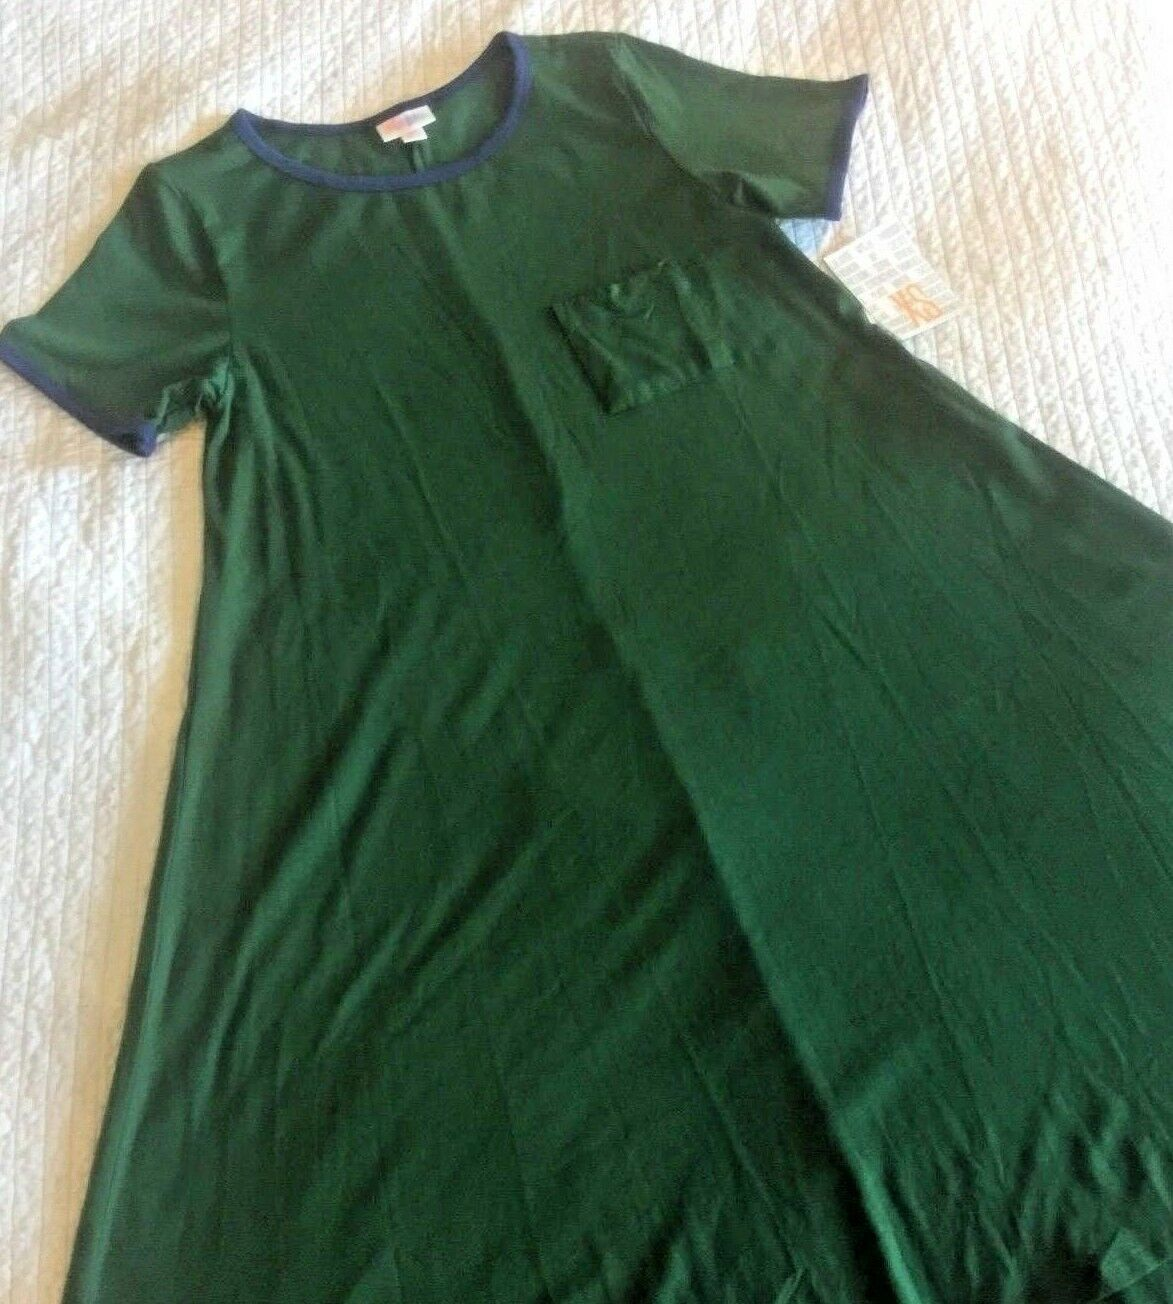 New LuLaRoe Carly Dress - Solid - Green with Navy Trim - Very Soft  Size XS